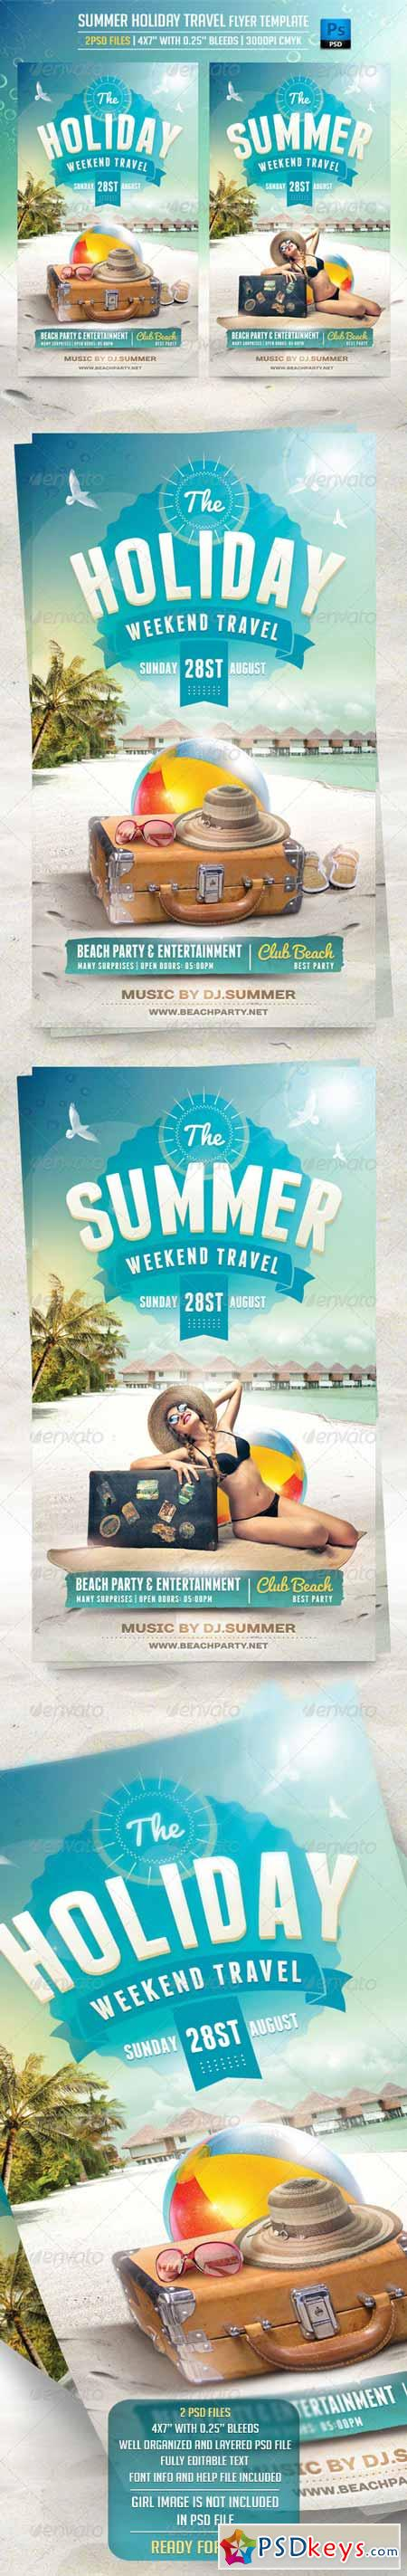 summer holiday travel flyer template 8269462 summer holiday travel flyer template 8269462